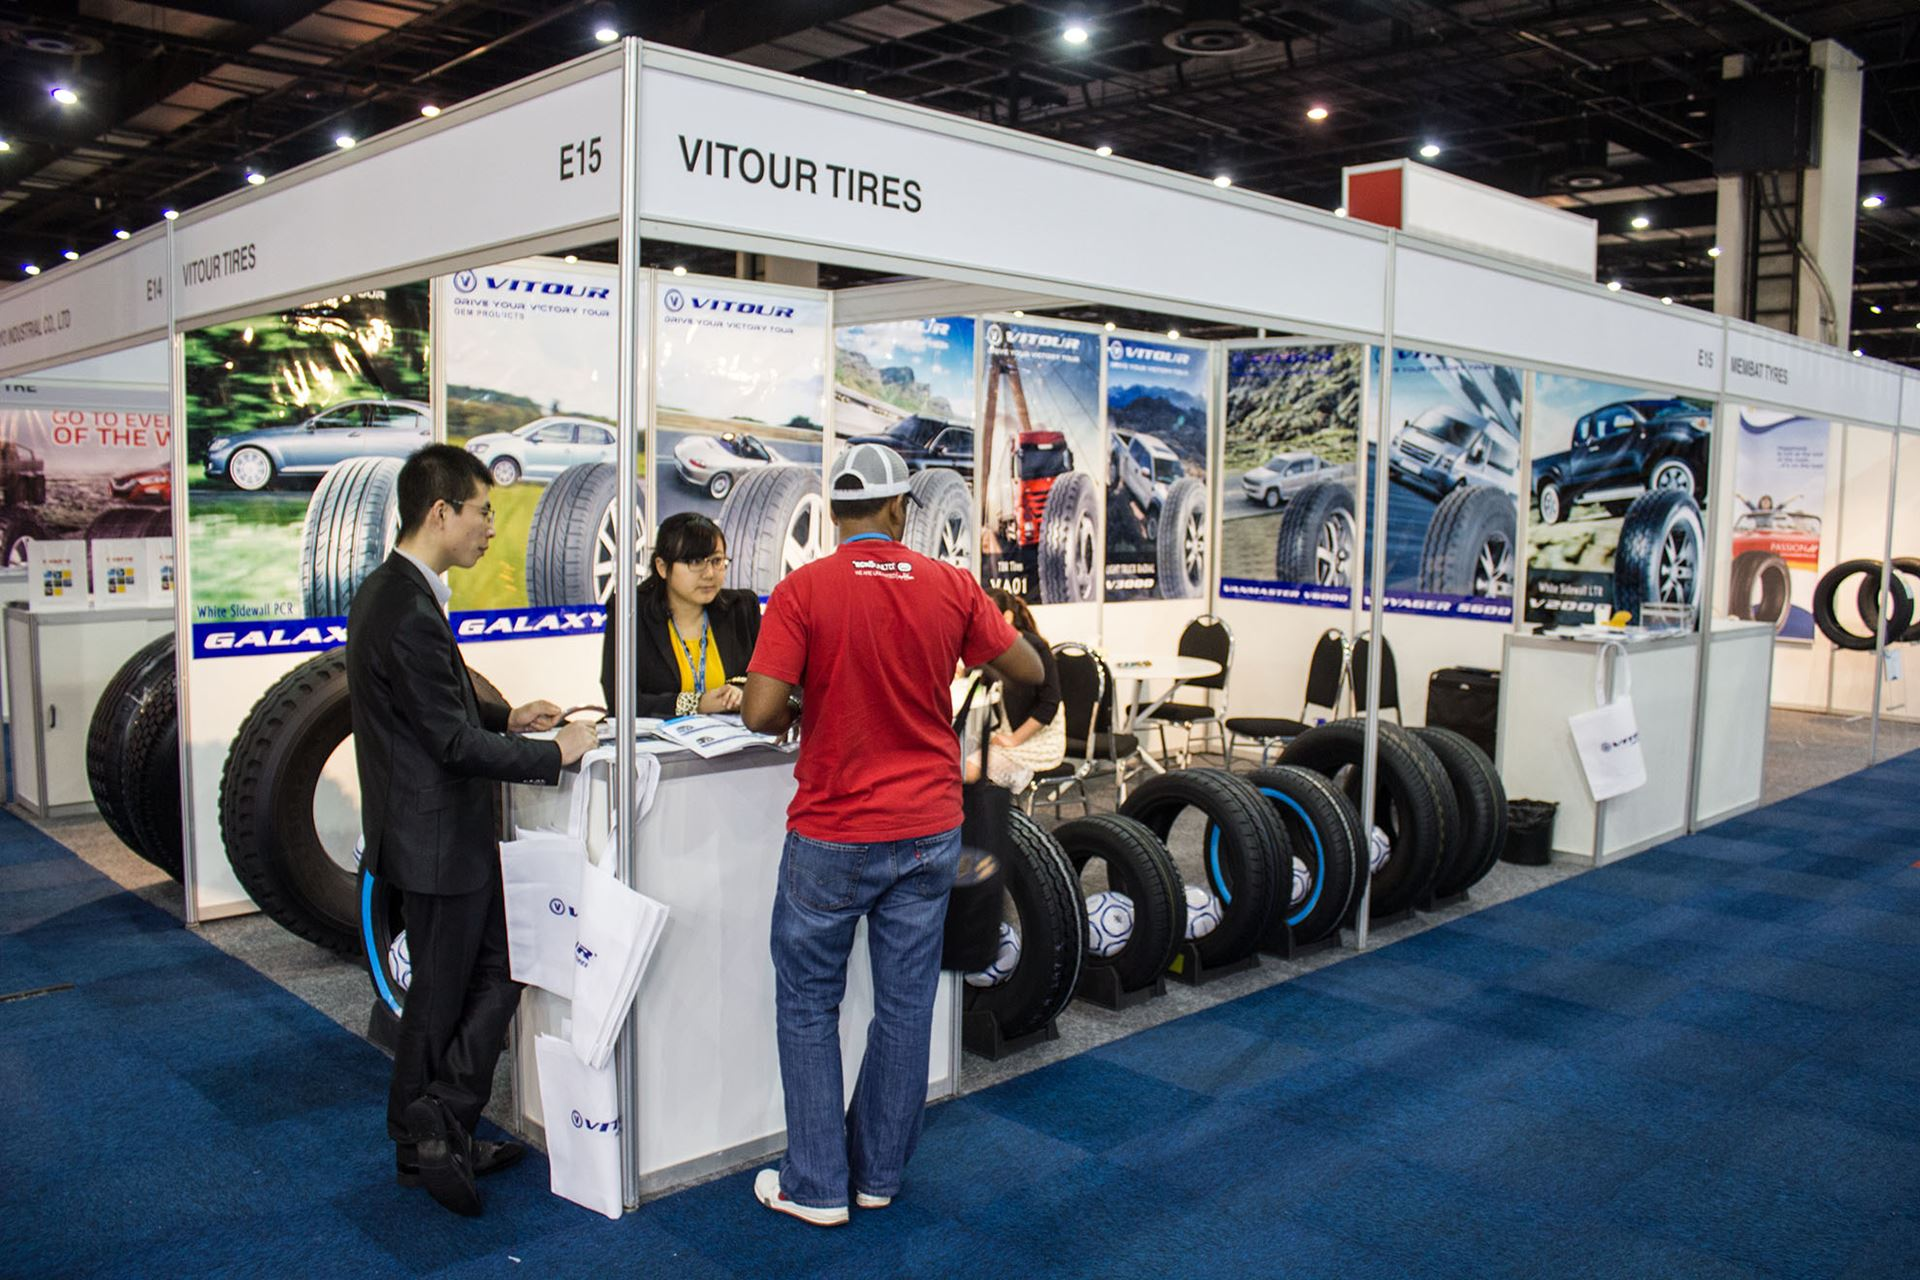 Tyre-Expo-South-Africa-2014-Vitour-Tires